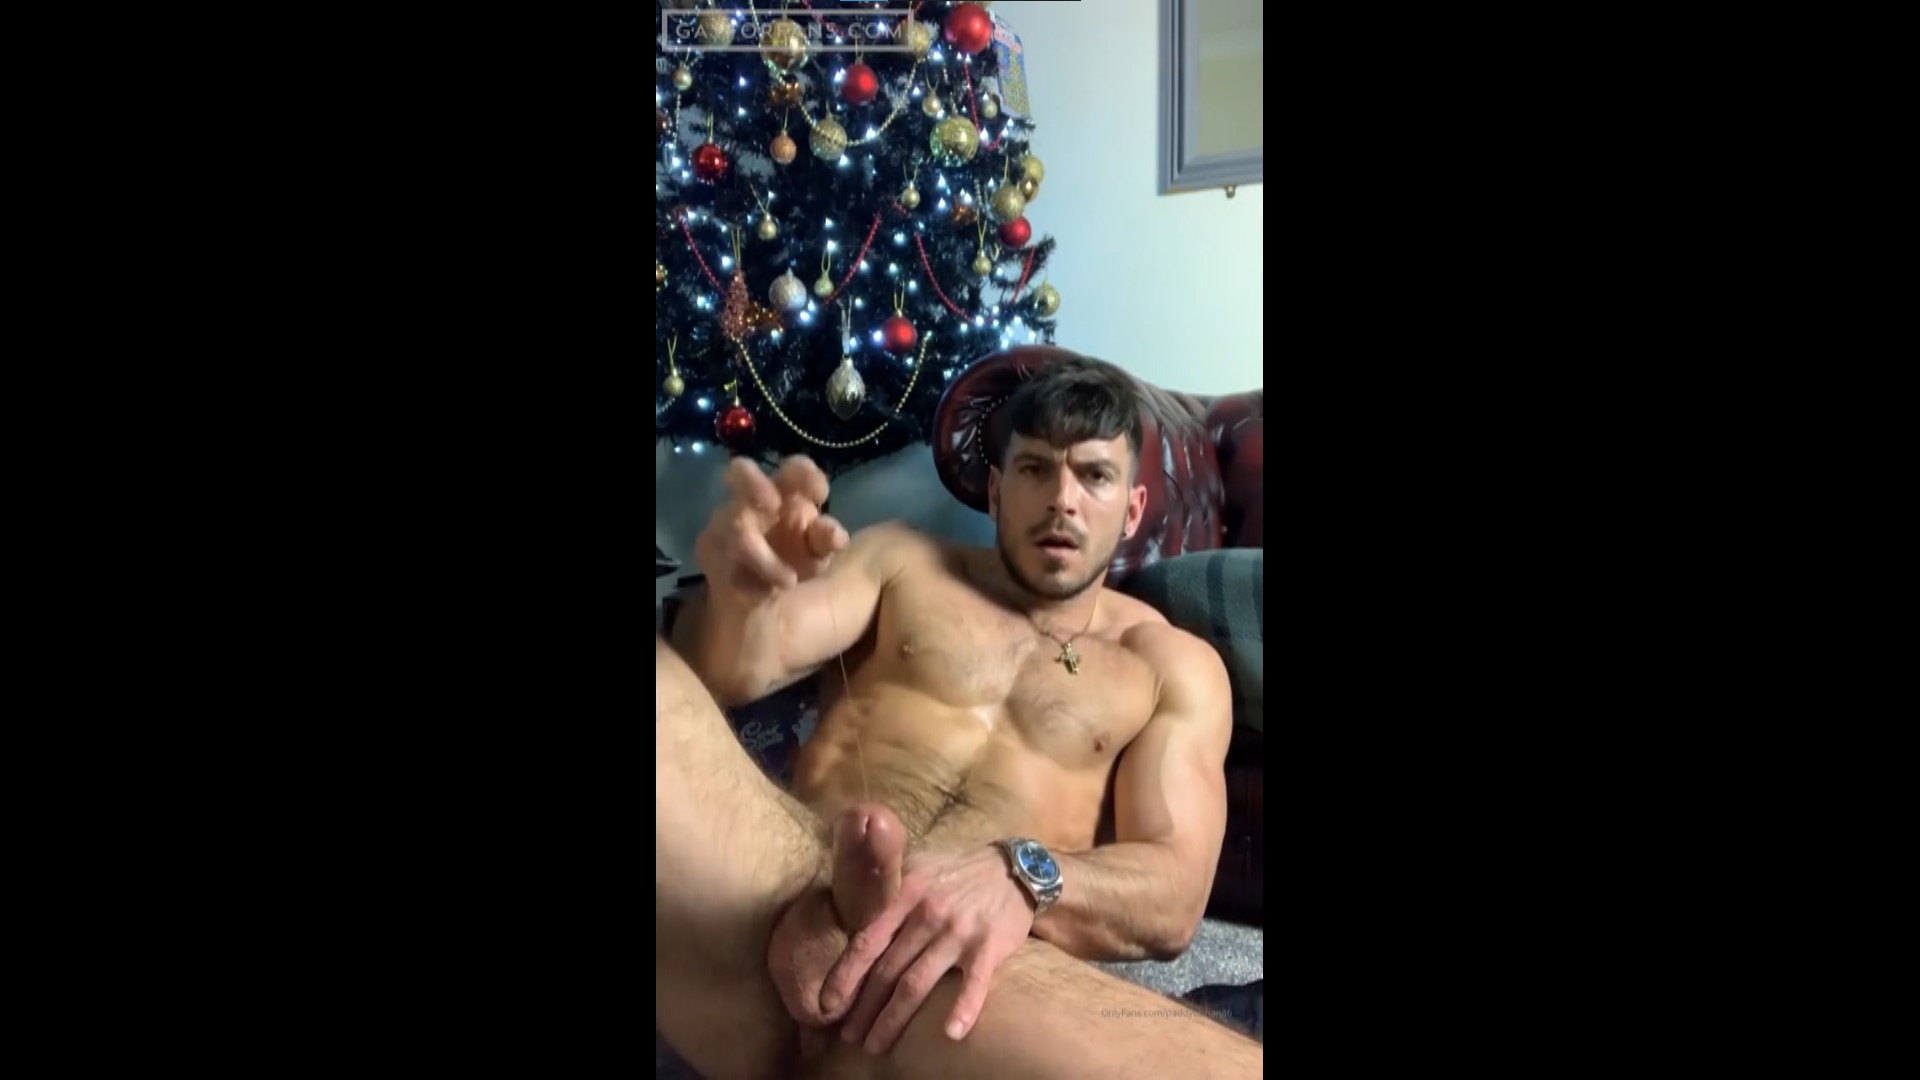 Jerking my cock and playing with my precum - Paddy O'Brian